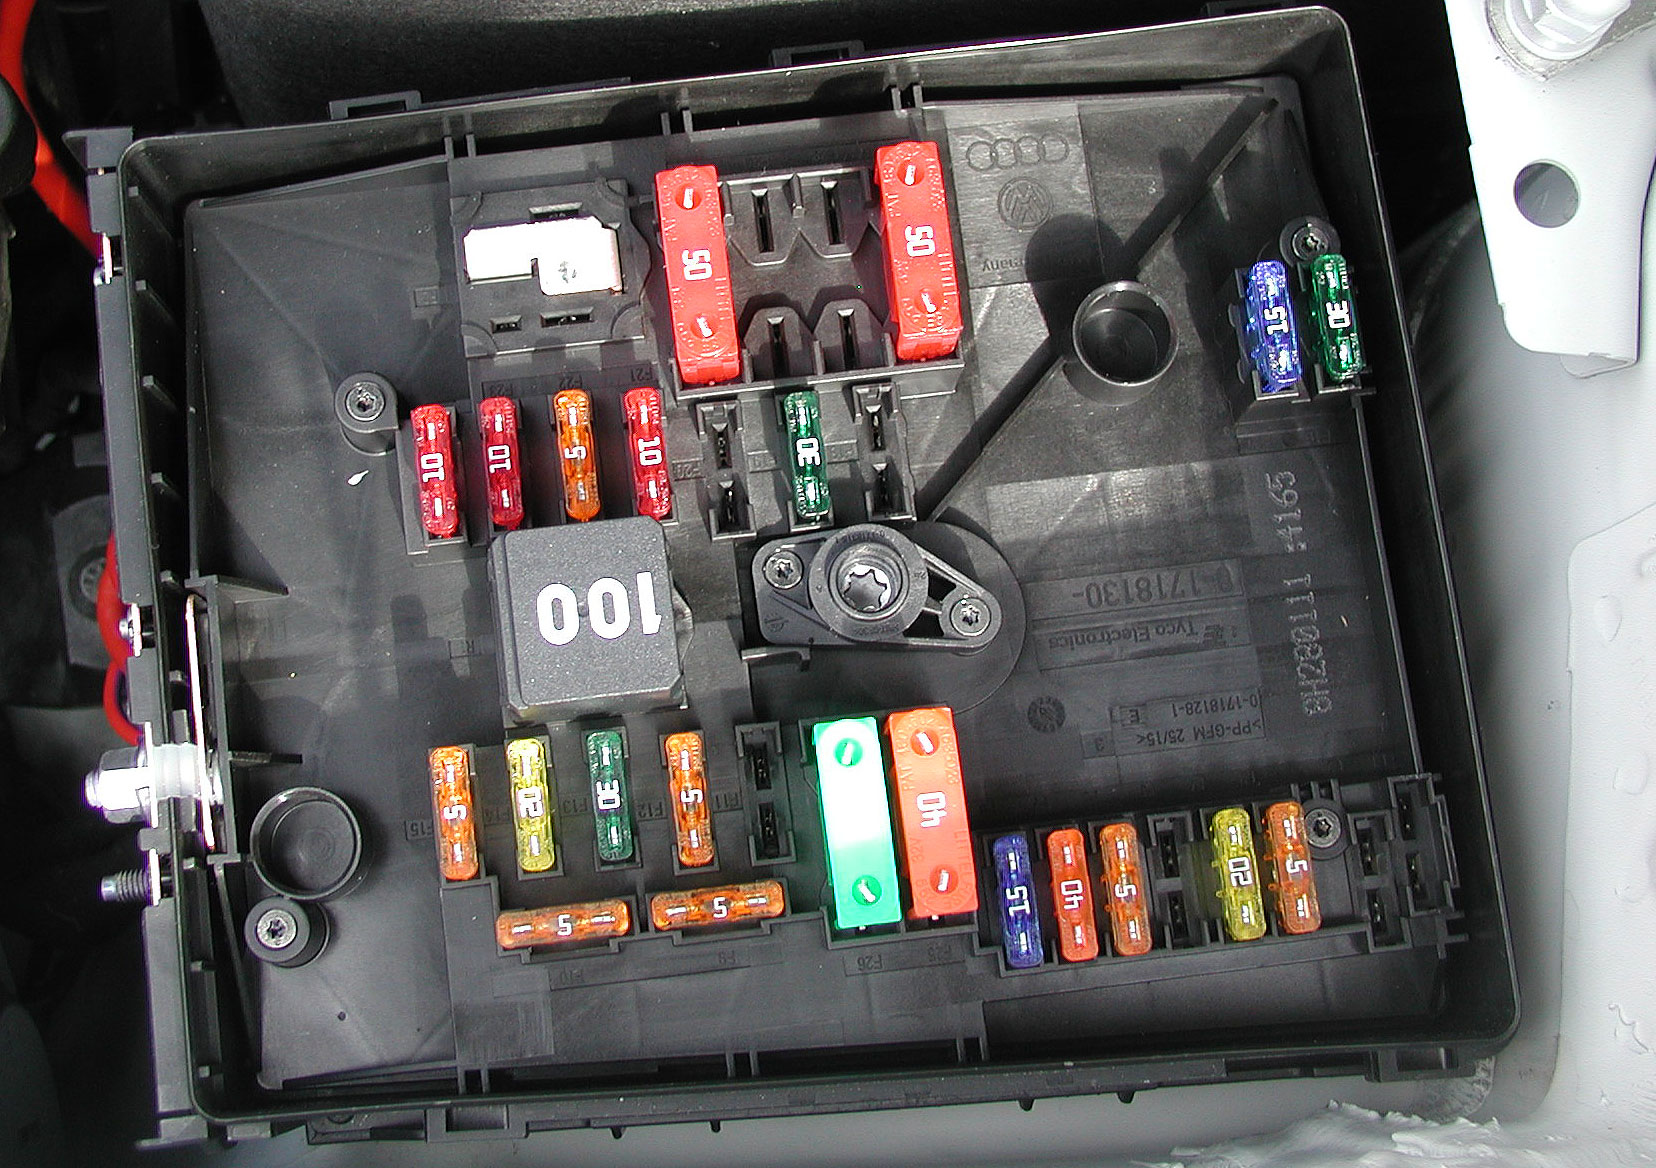 engineFuses2 golf mkv 1 9 tdi rcd 310 battery drain the volkswagen club of volkswagen golf mk6 fuse box diagram at n-0.co